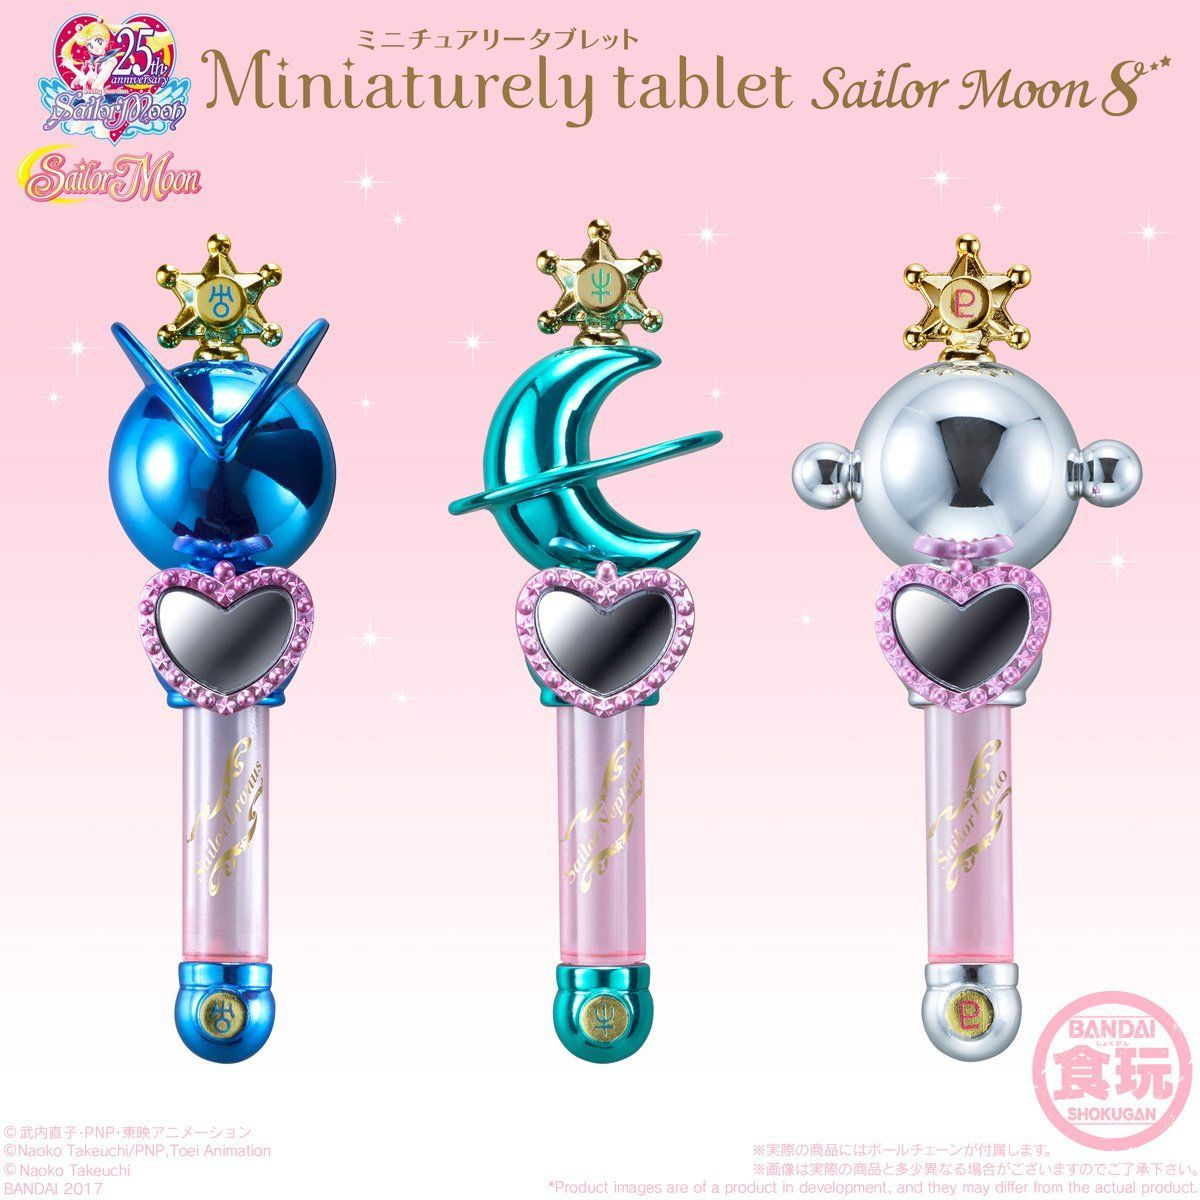 """sailor moon"" ""sailor moon toys"" ""sailor moon wand"" ""sailor moon merchandise"" ""sailor moon crystal"" ""sailor moon anime"" ""sailor moon liprod"" ""sailor moon collectibles"" ""outer senshi"" liprod anime sailor pluto neptune uranus bandai shop"